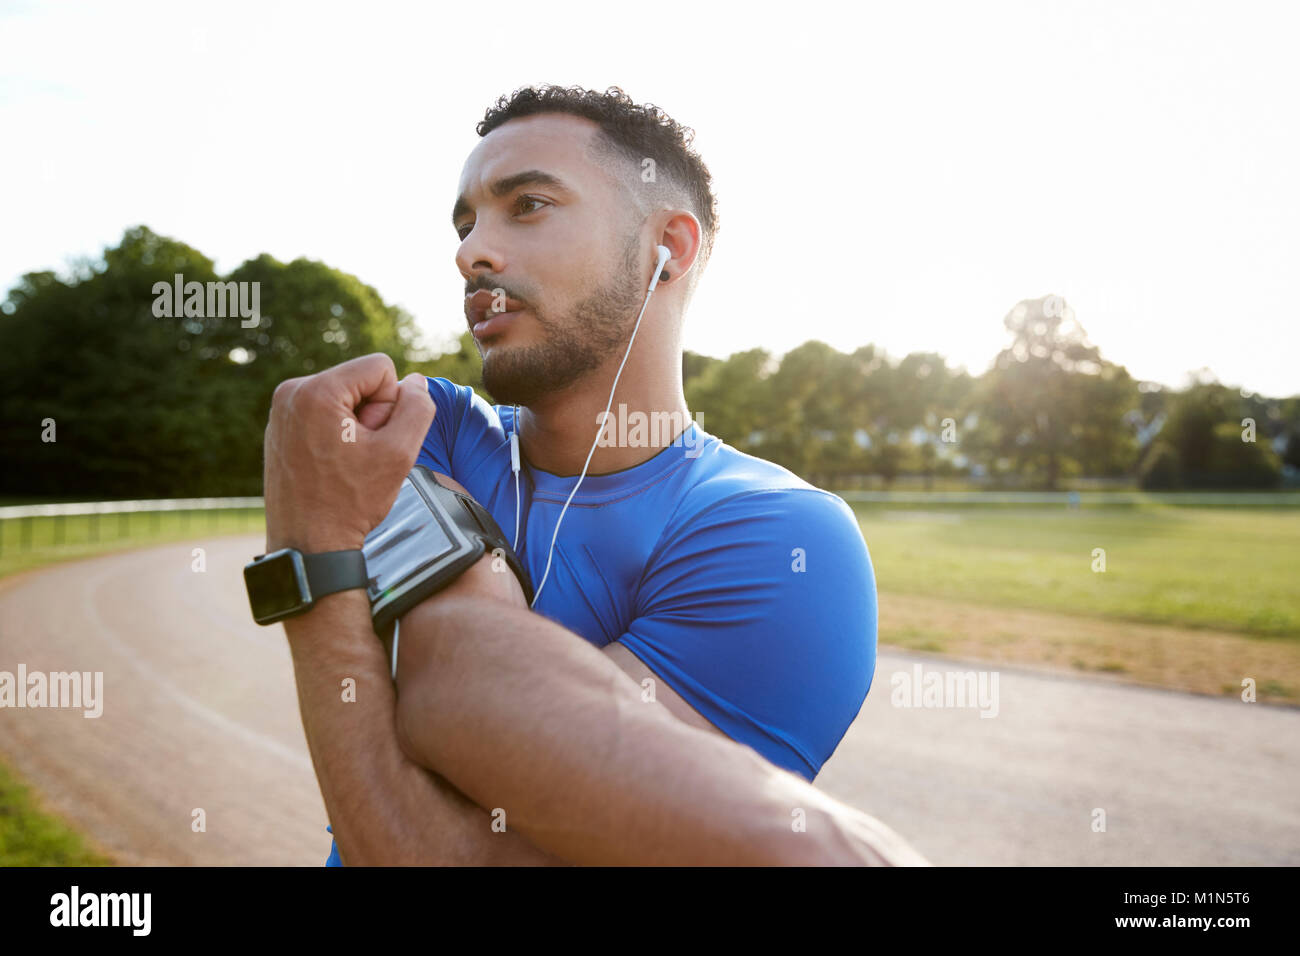 Male athlete at track stretching shoulders, close up - Stock Image